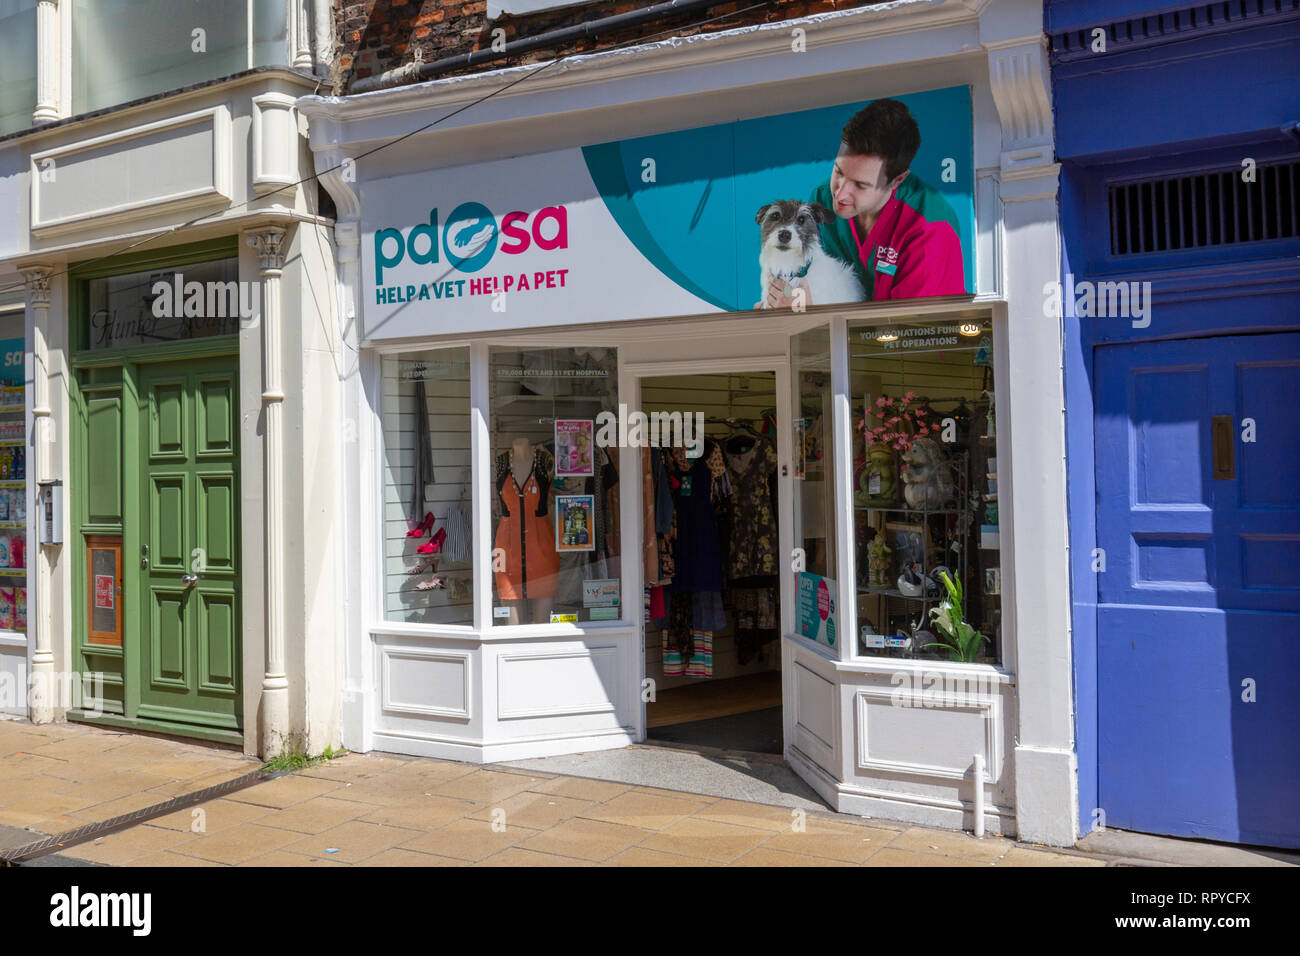 The PDSA (Peoples Dispensary for Sick Animals) charity shop in the City of York, UK. - Stock Image